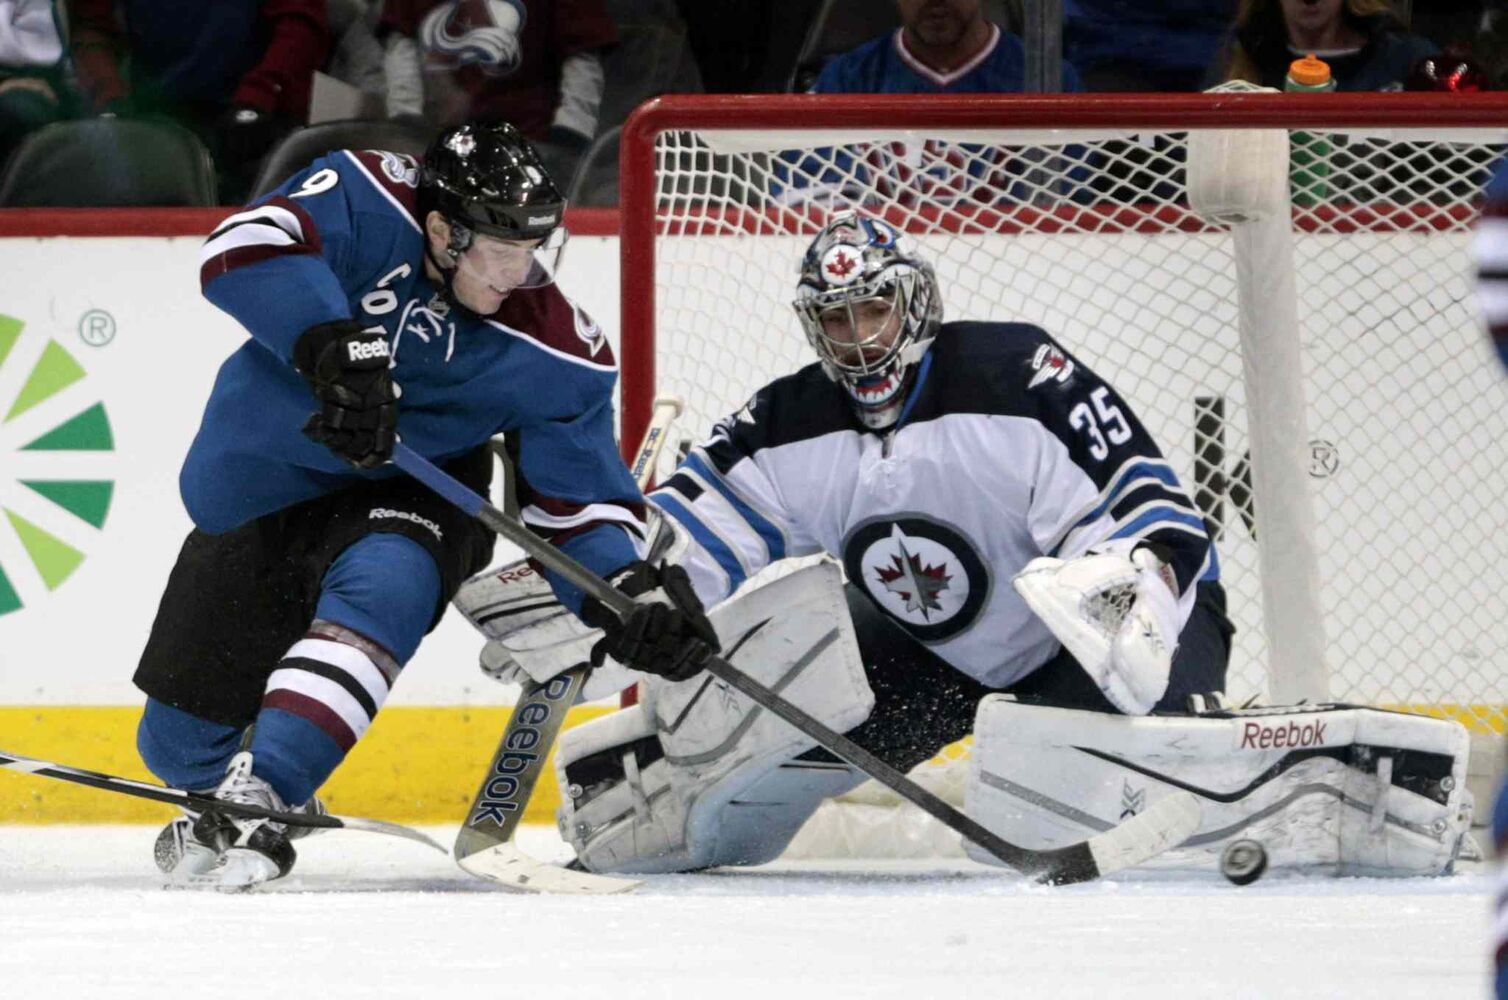 Colorado Avalanche center Matt Duchene (left) reaches for the puck in front of Winnipeg Jets goalie Al Montoya during the second period.